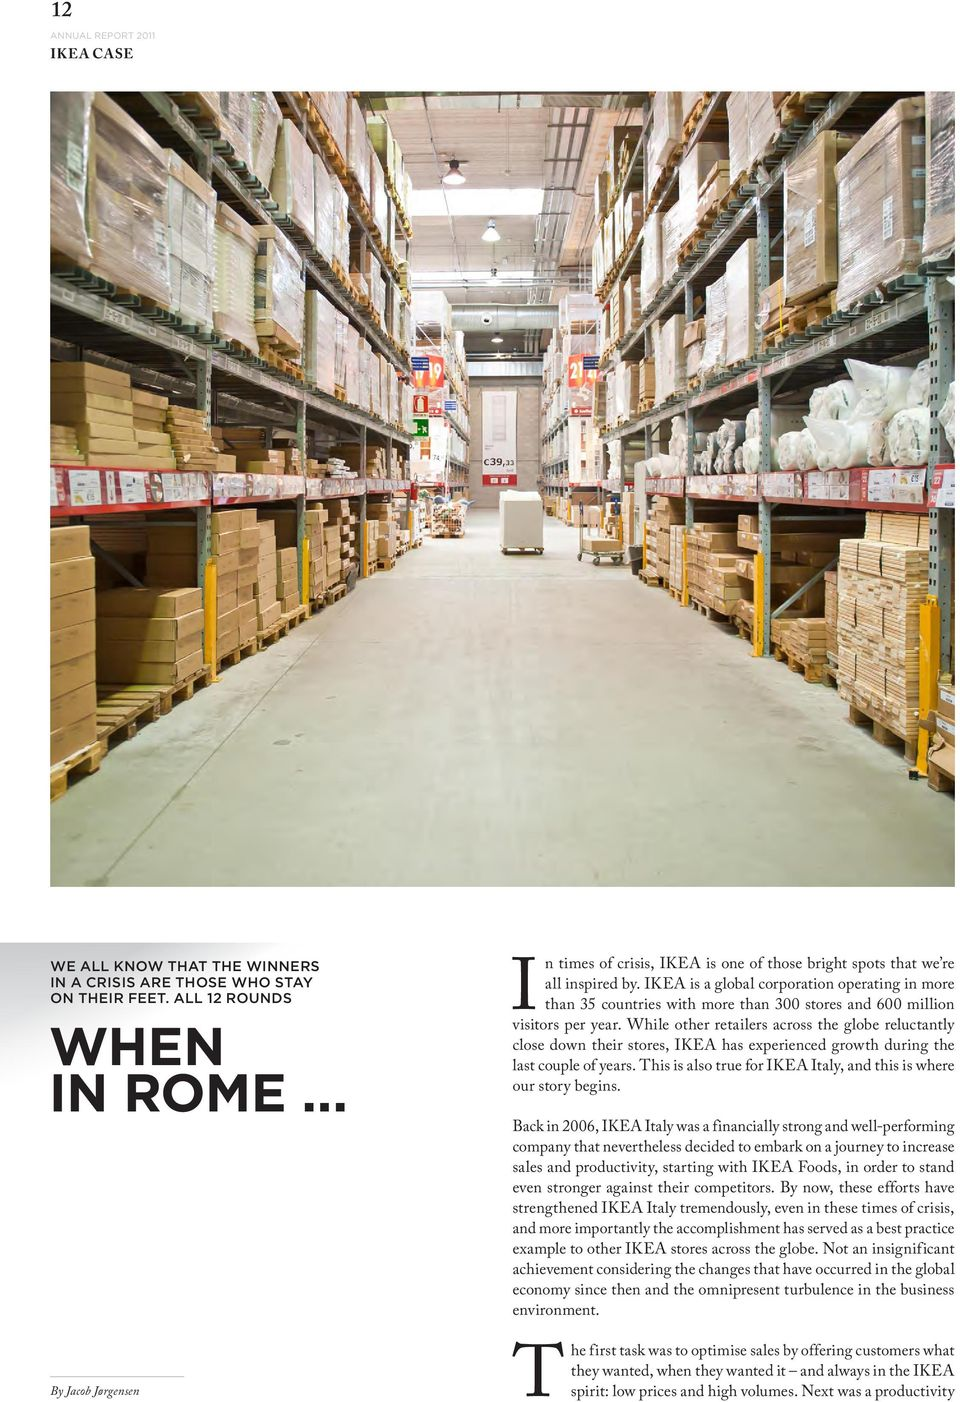 fo IKEA Italy, ad ths s wh ou stoy bgs Back 2006, IKEA Italy was a facally st ad wll-pf copay th vthlss dcdd to bak o a jouy to cas sals ad poductvty, stg wth IKEA Foods, od to stad v st agast th